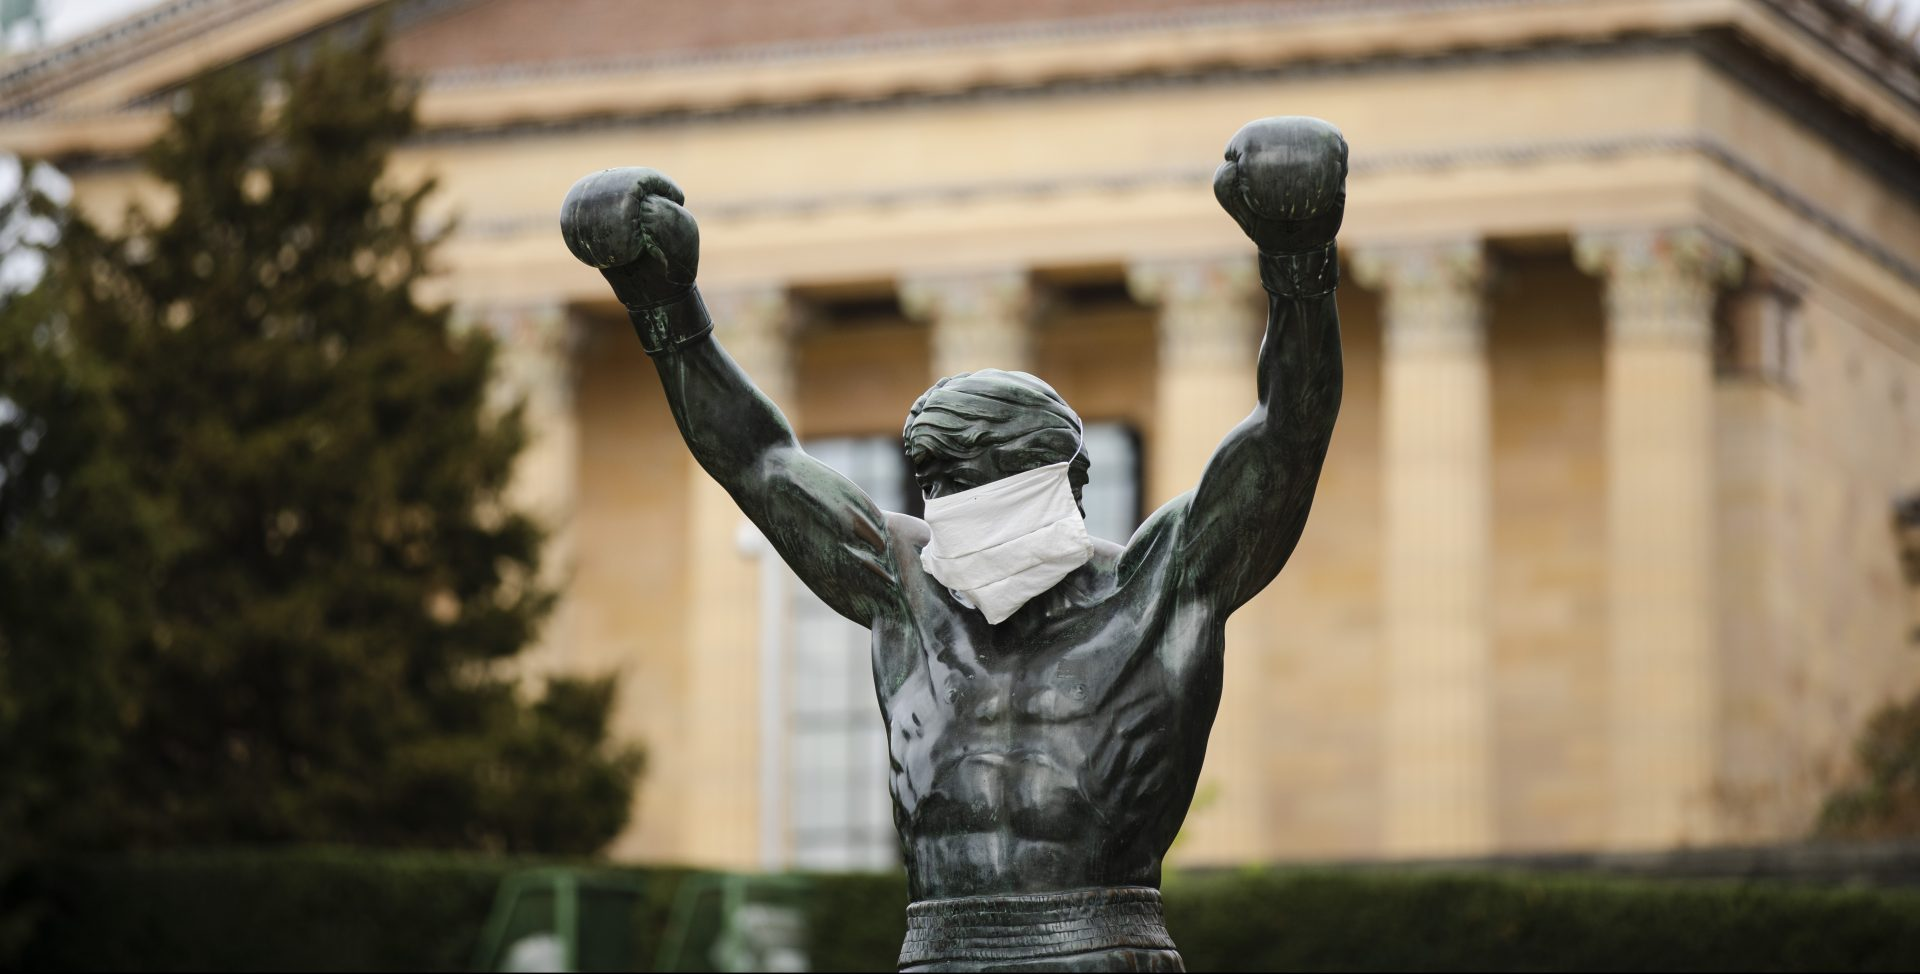 The Rocky statue is outfitted with mock surgical face mask at the Philadelphia Art Museum in Philadelphia, Tuesday, April 14, 2020.